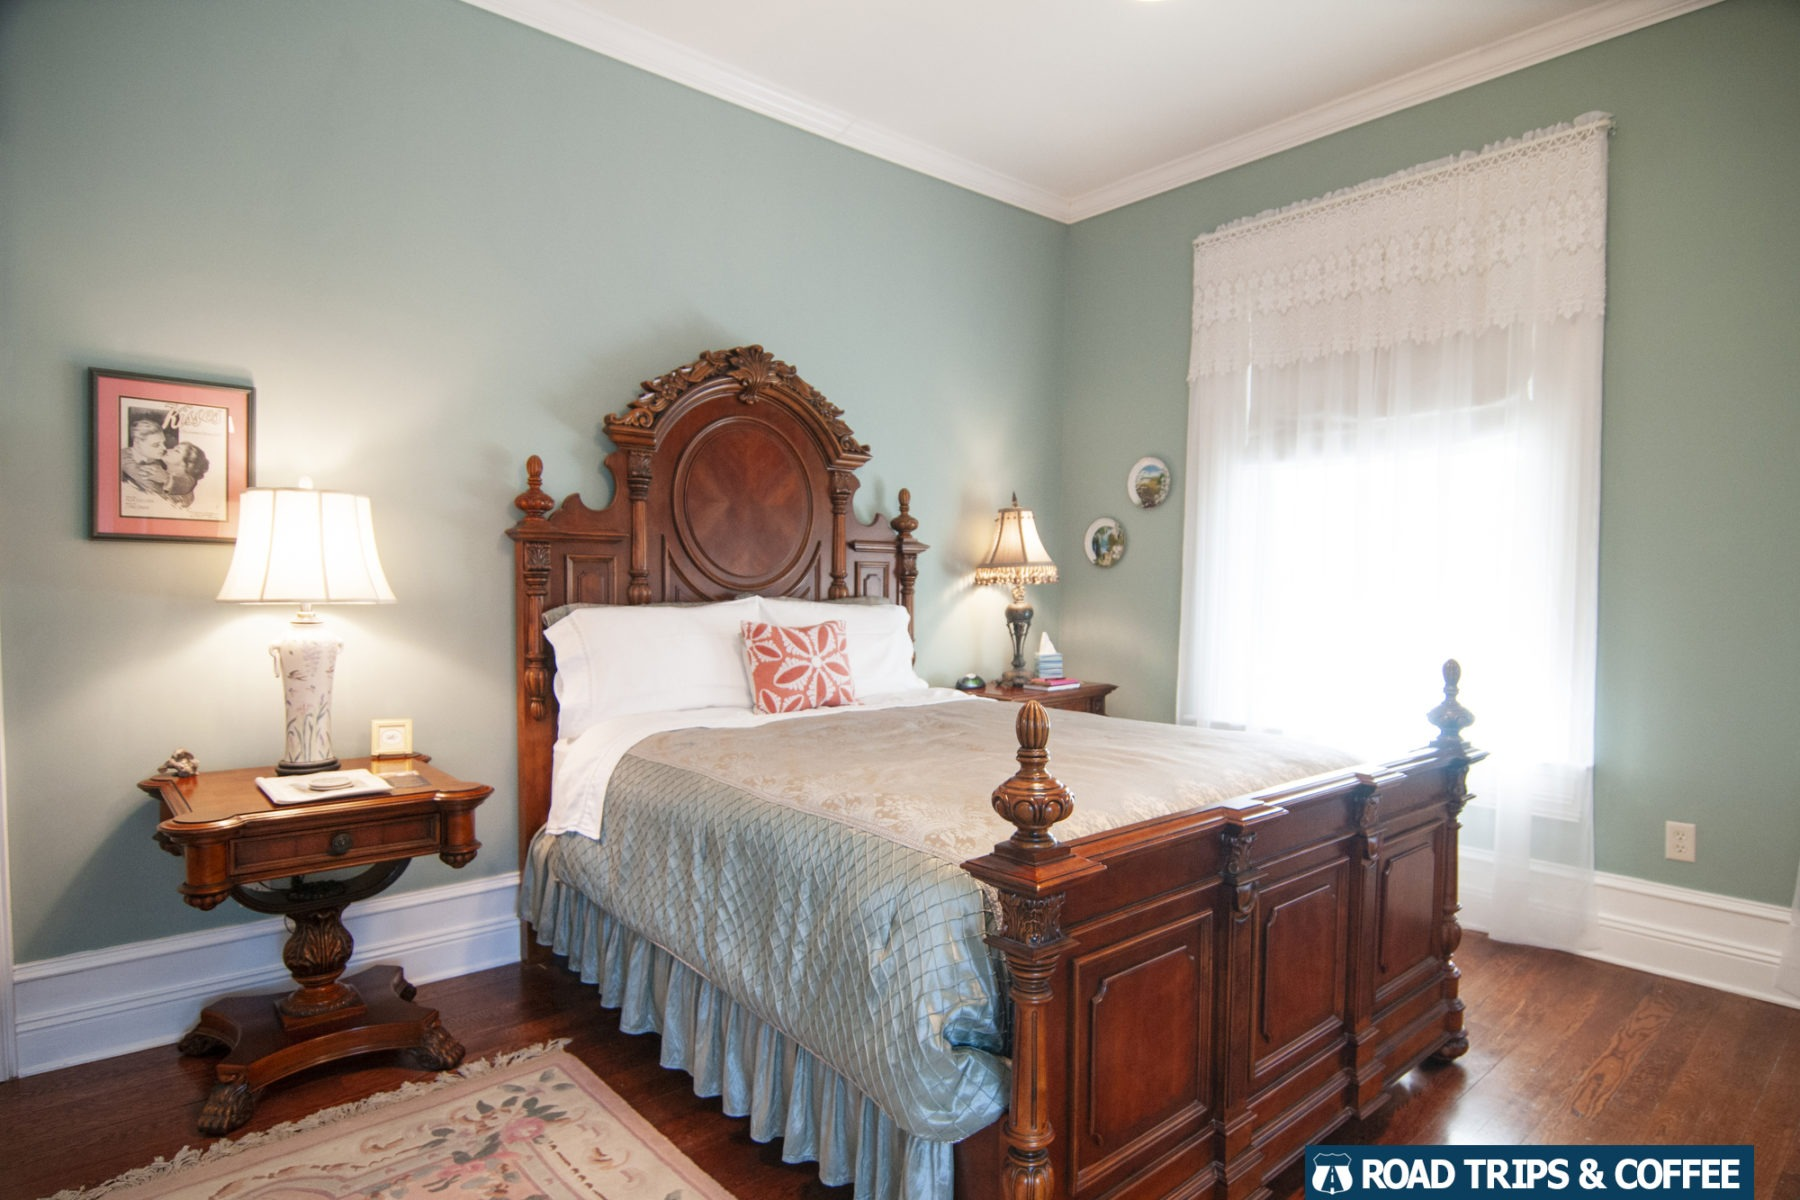 A comfortable bed in a large wooden bedframe in the Trinkle Mansion Bed and Breakfast in Wytheville, Virginia